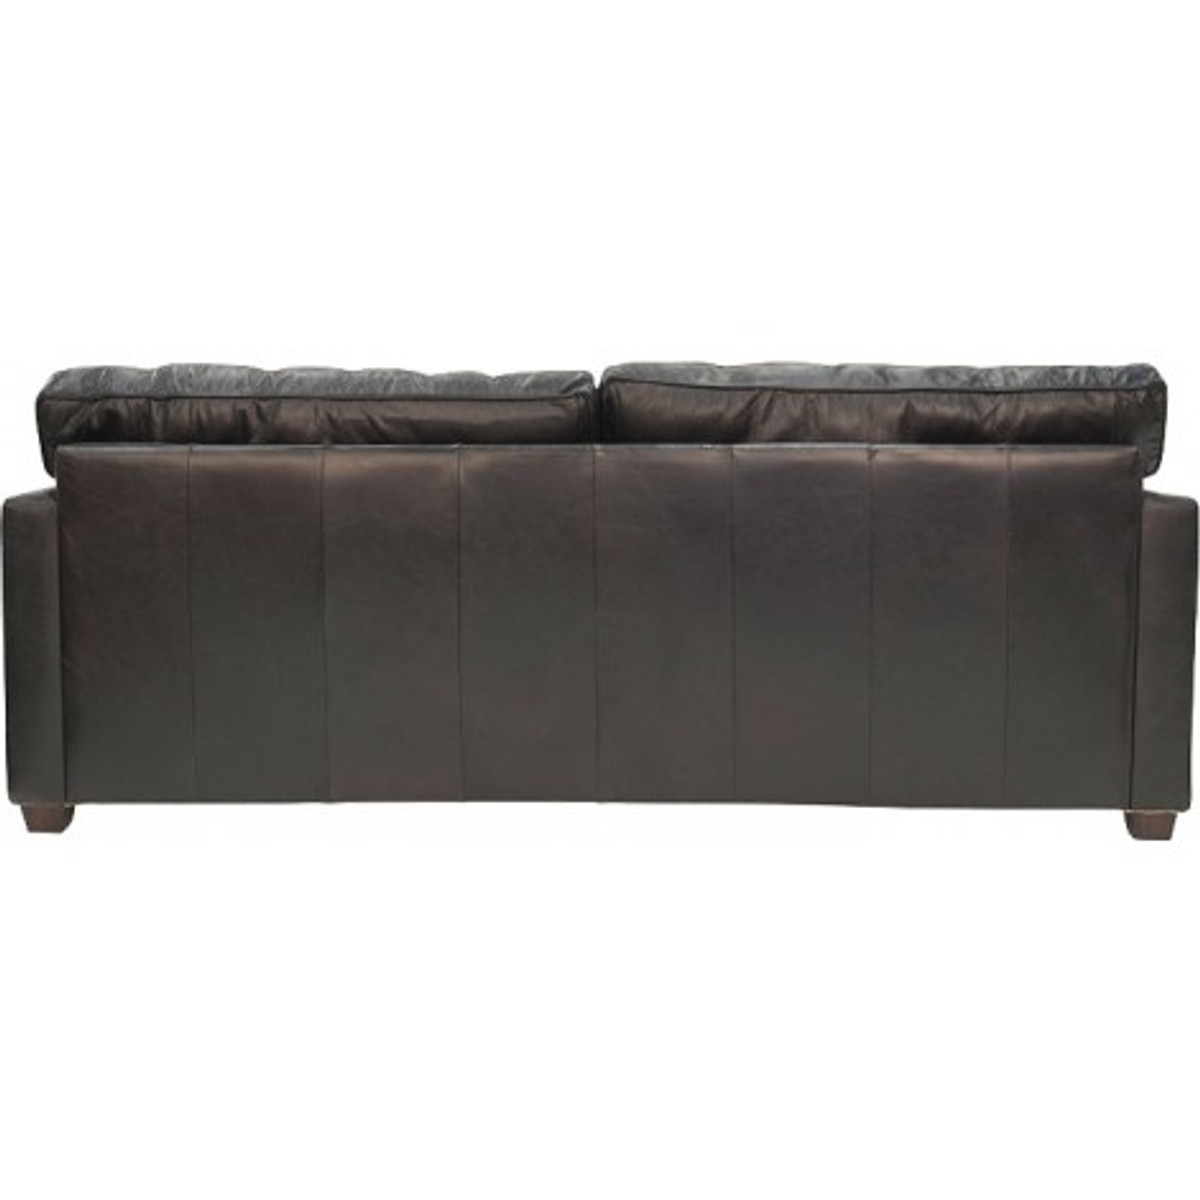 Picture of: West End 3 Seater Worn Black Leather Sofa Cargo Lane